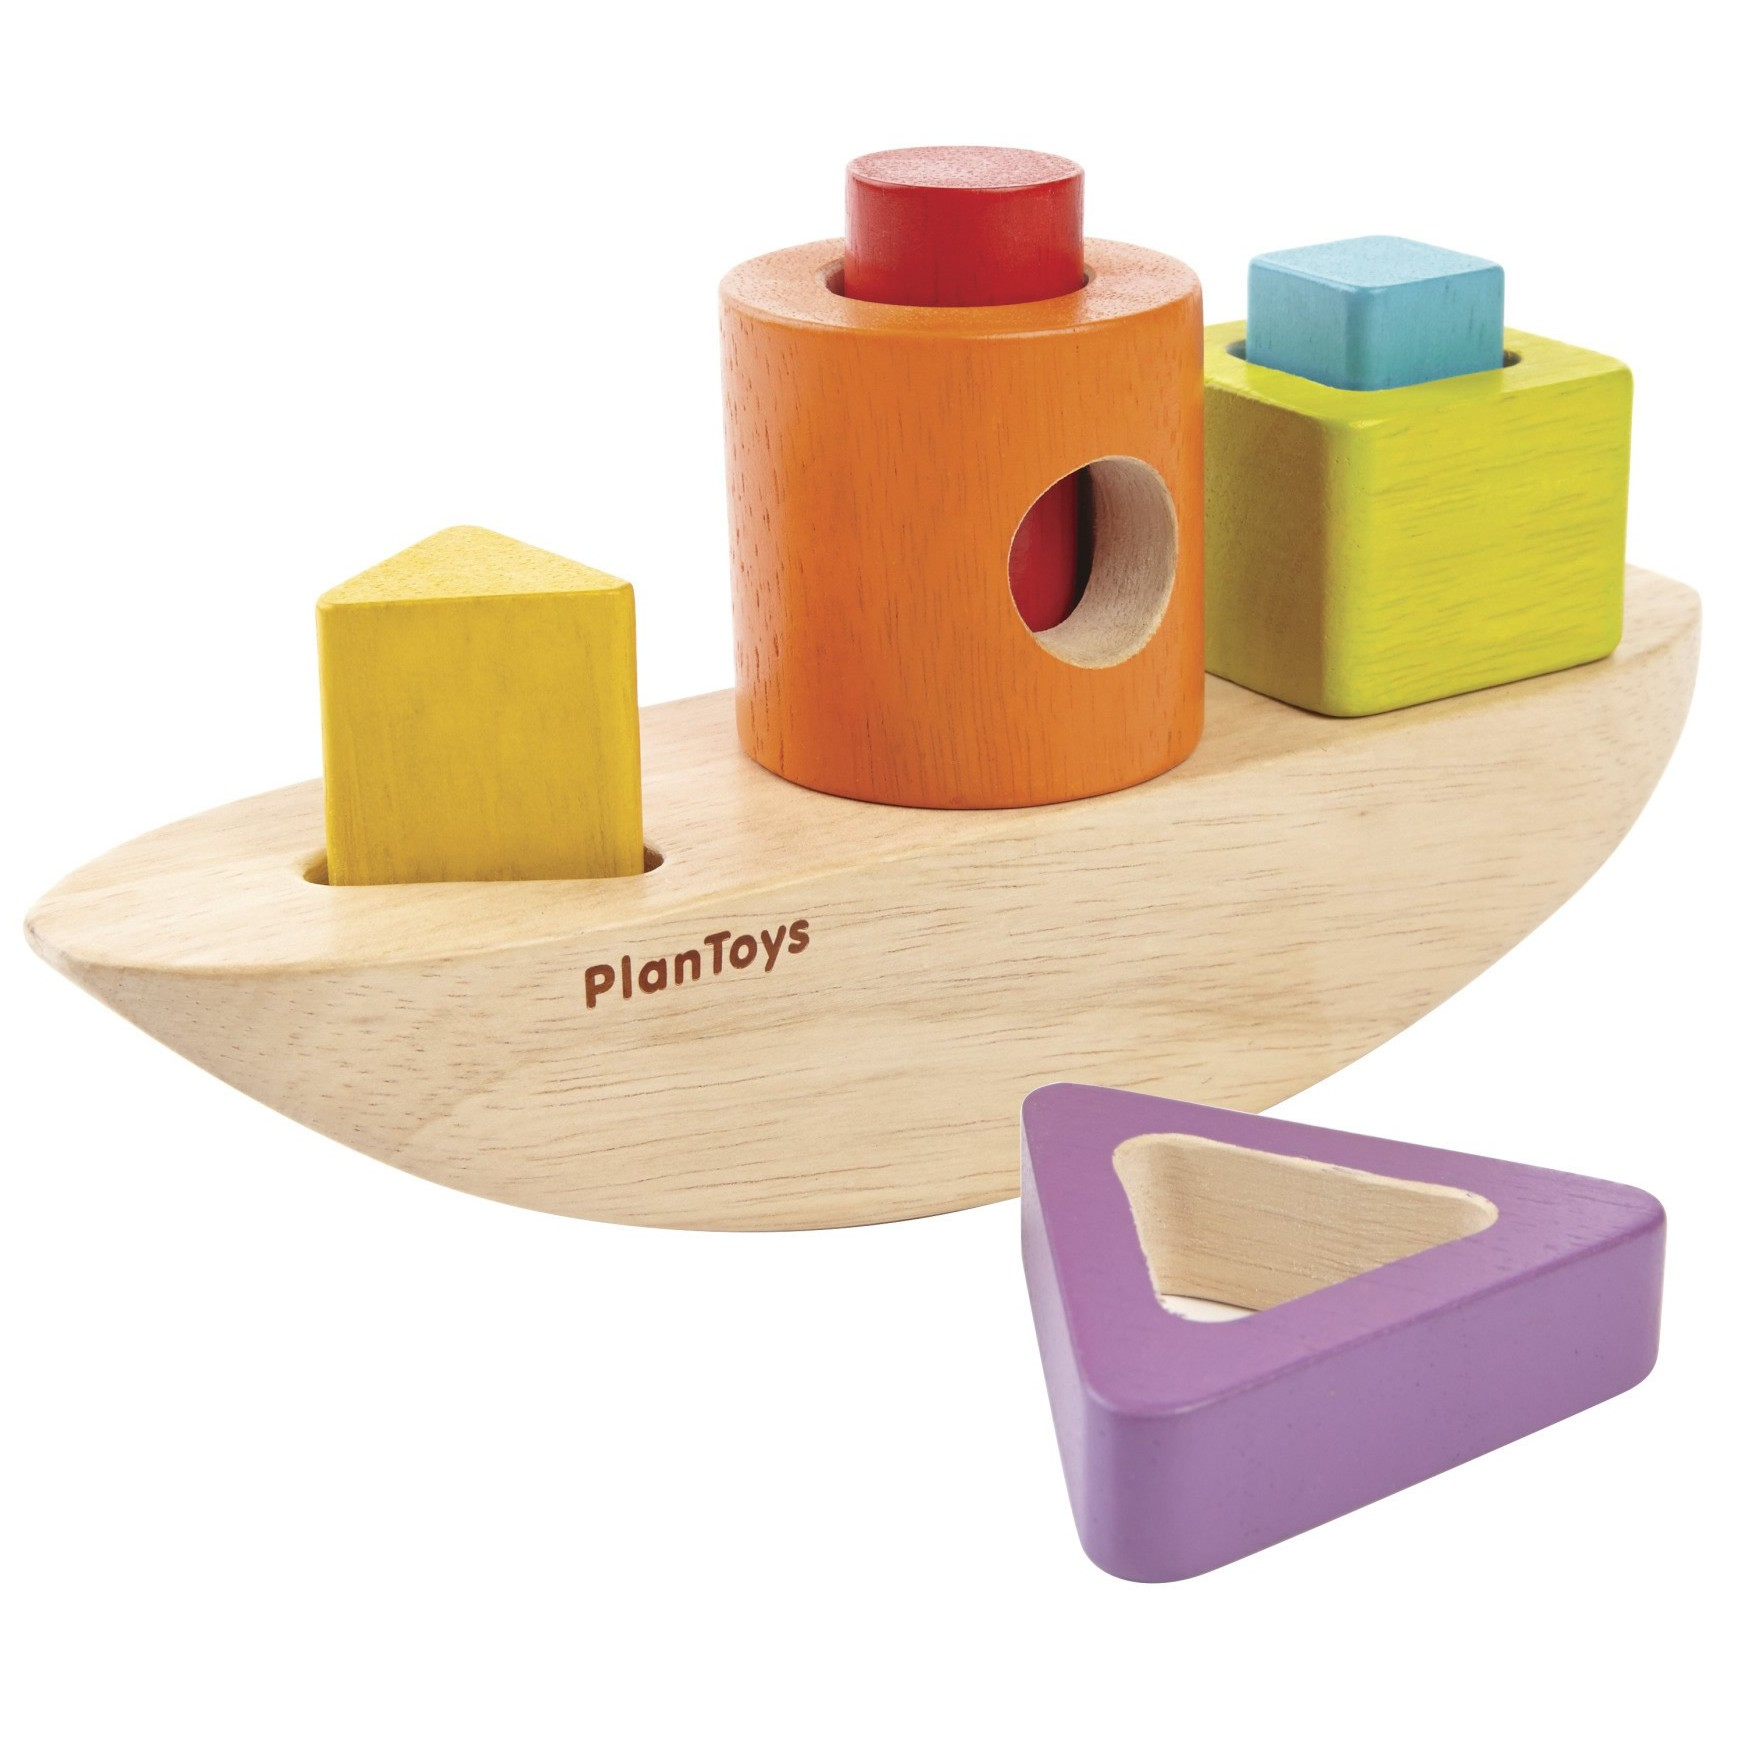 Wooden Toy Plans Catalog : Plan toys sorting boat